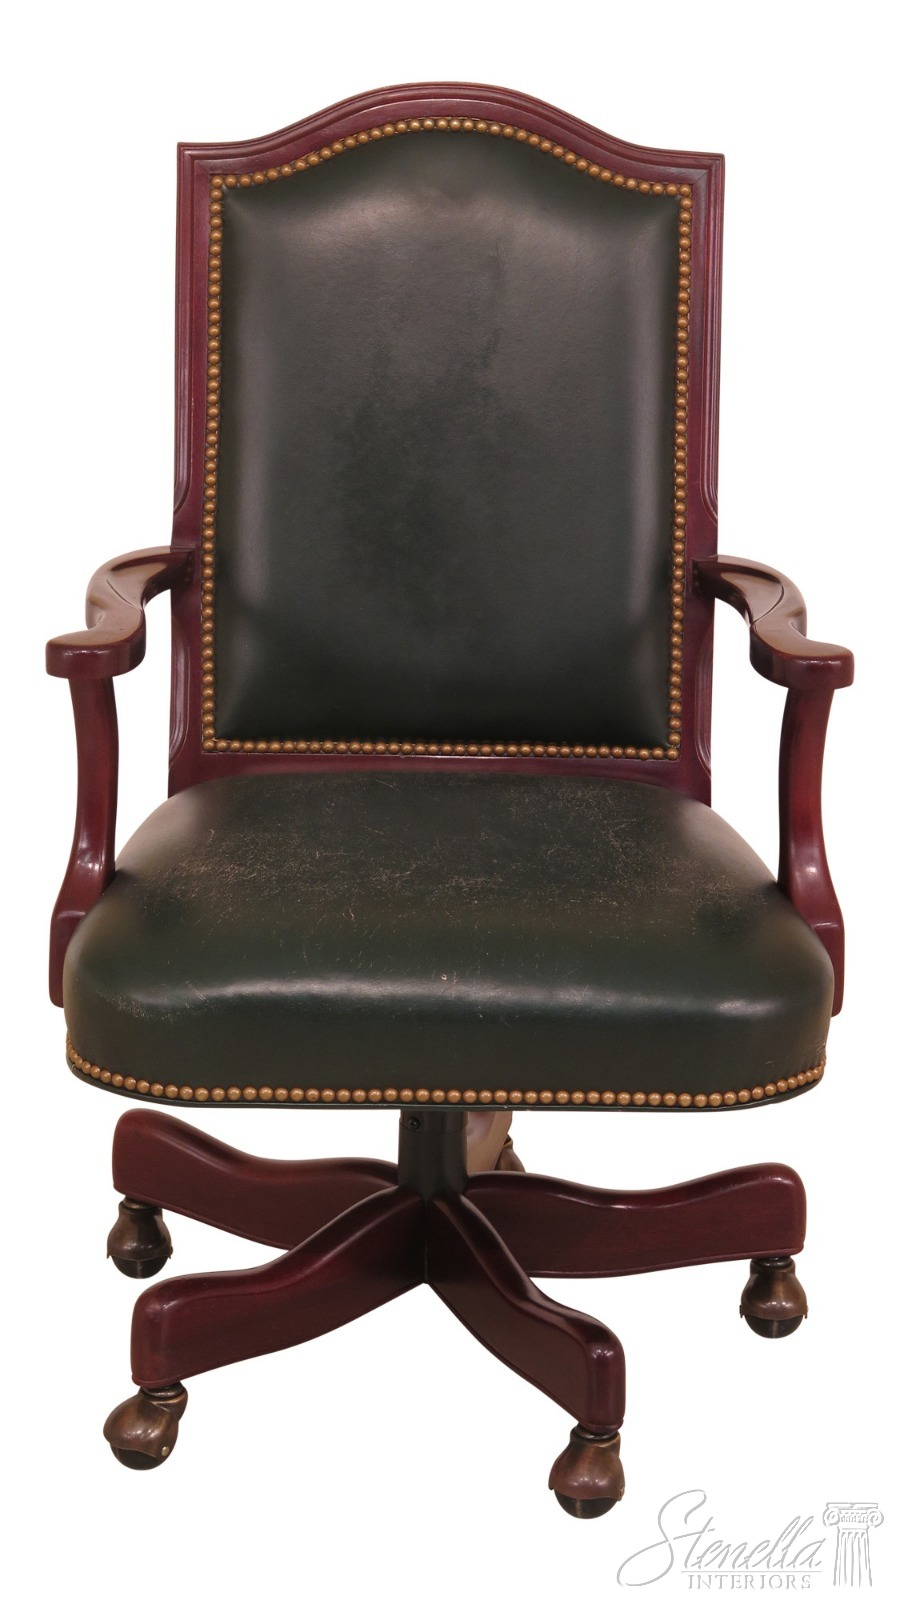 antique mahogany office chair cover rentals memphis f46273ec hancock moore green leather desk ebay details about